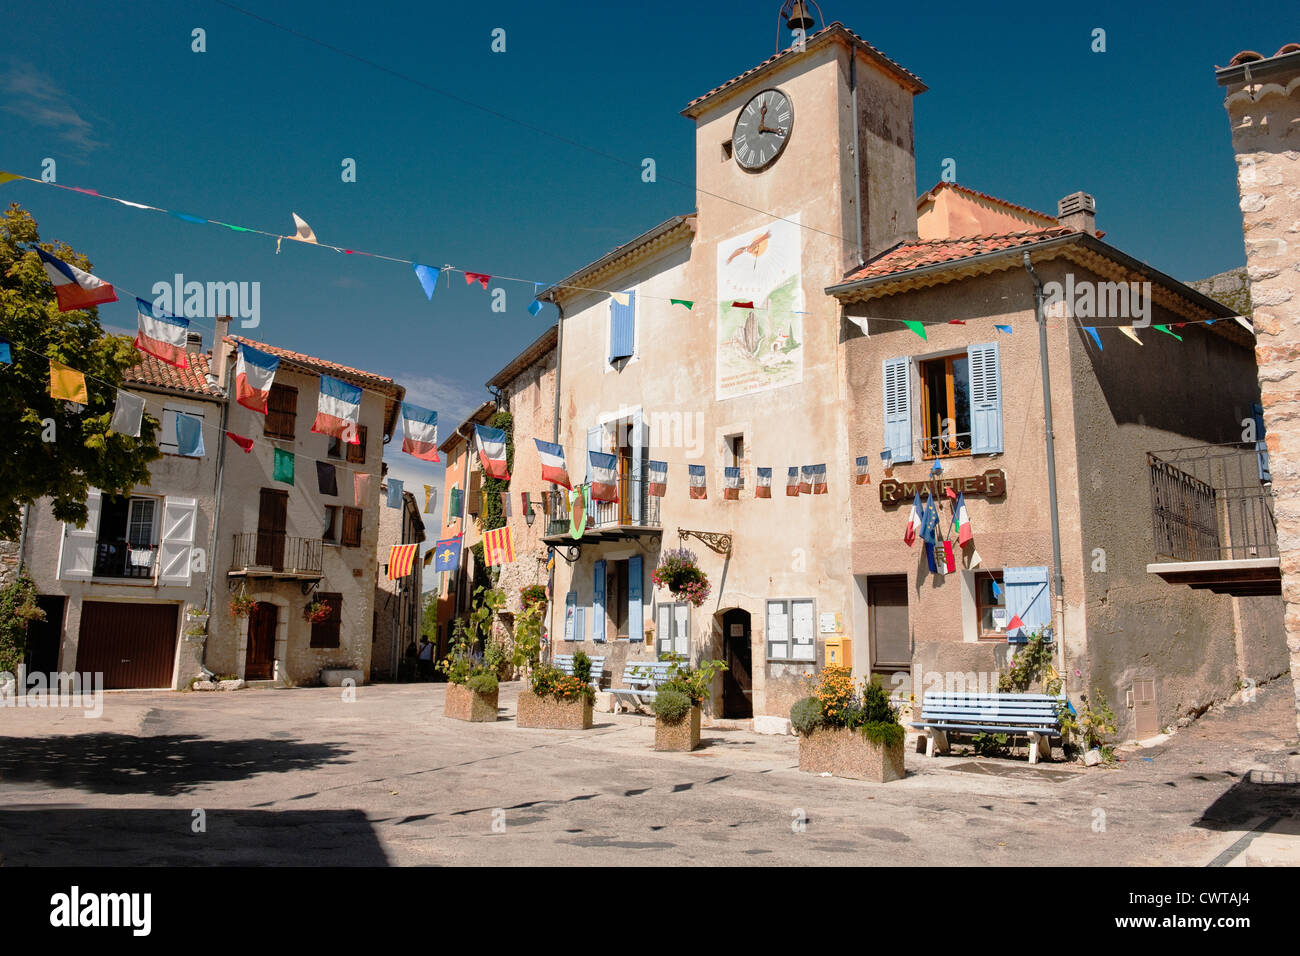 The Village Of Rougon A Village In The Verdon Gorges Area